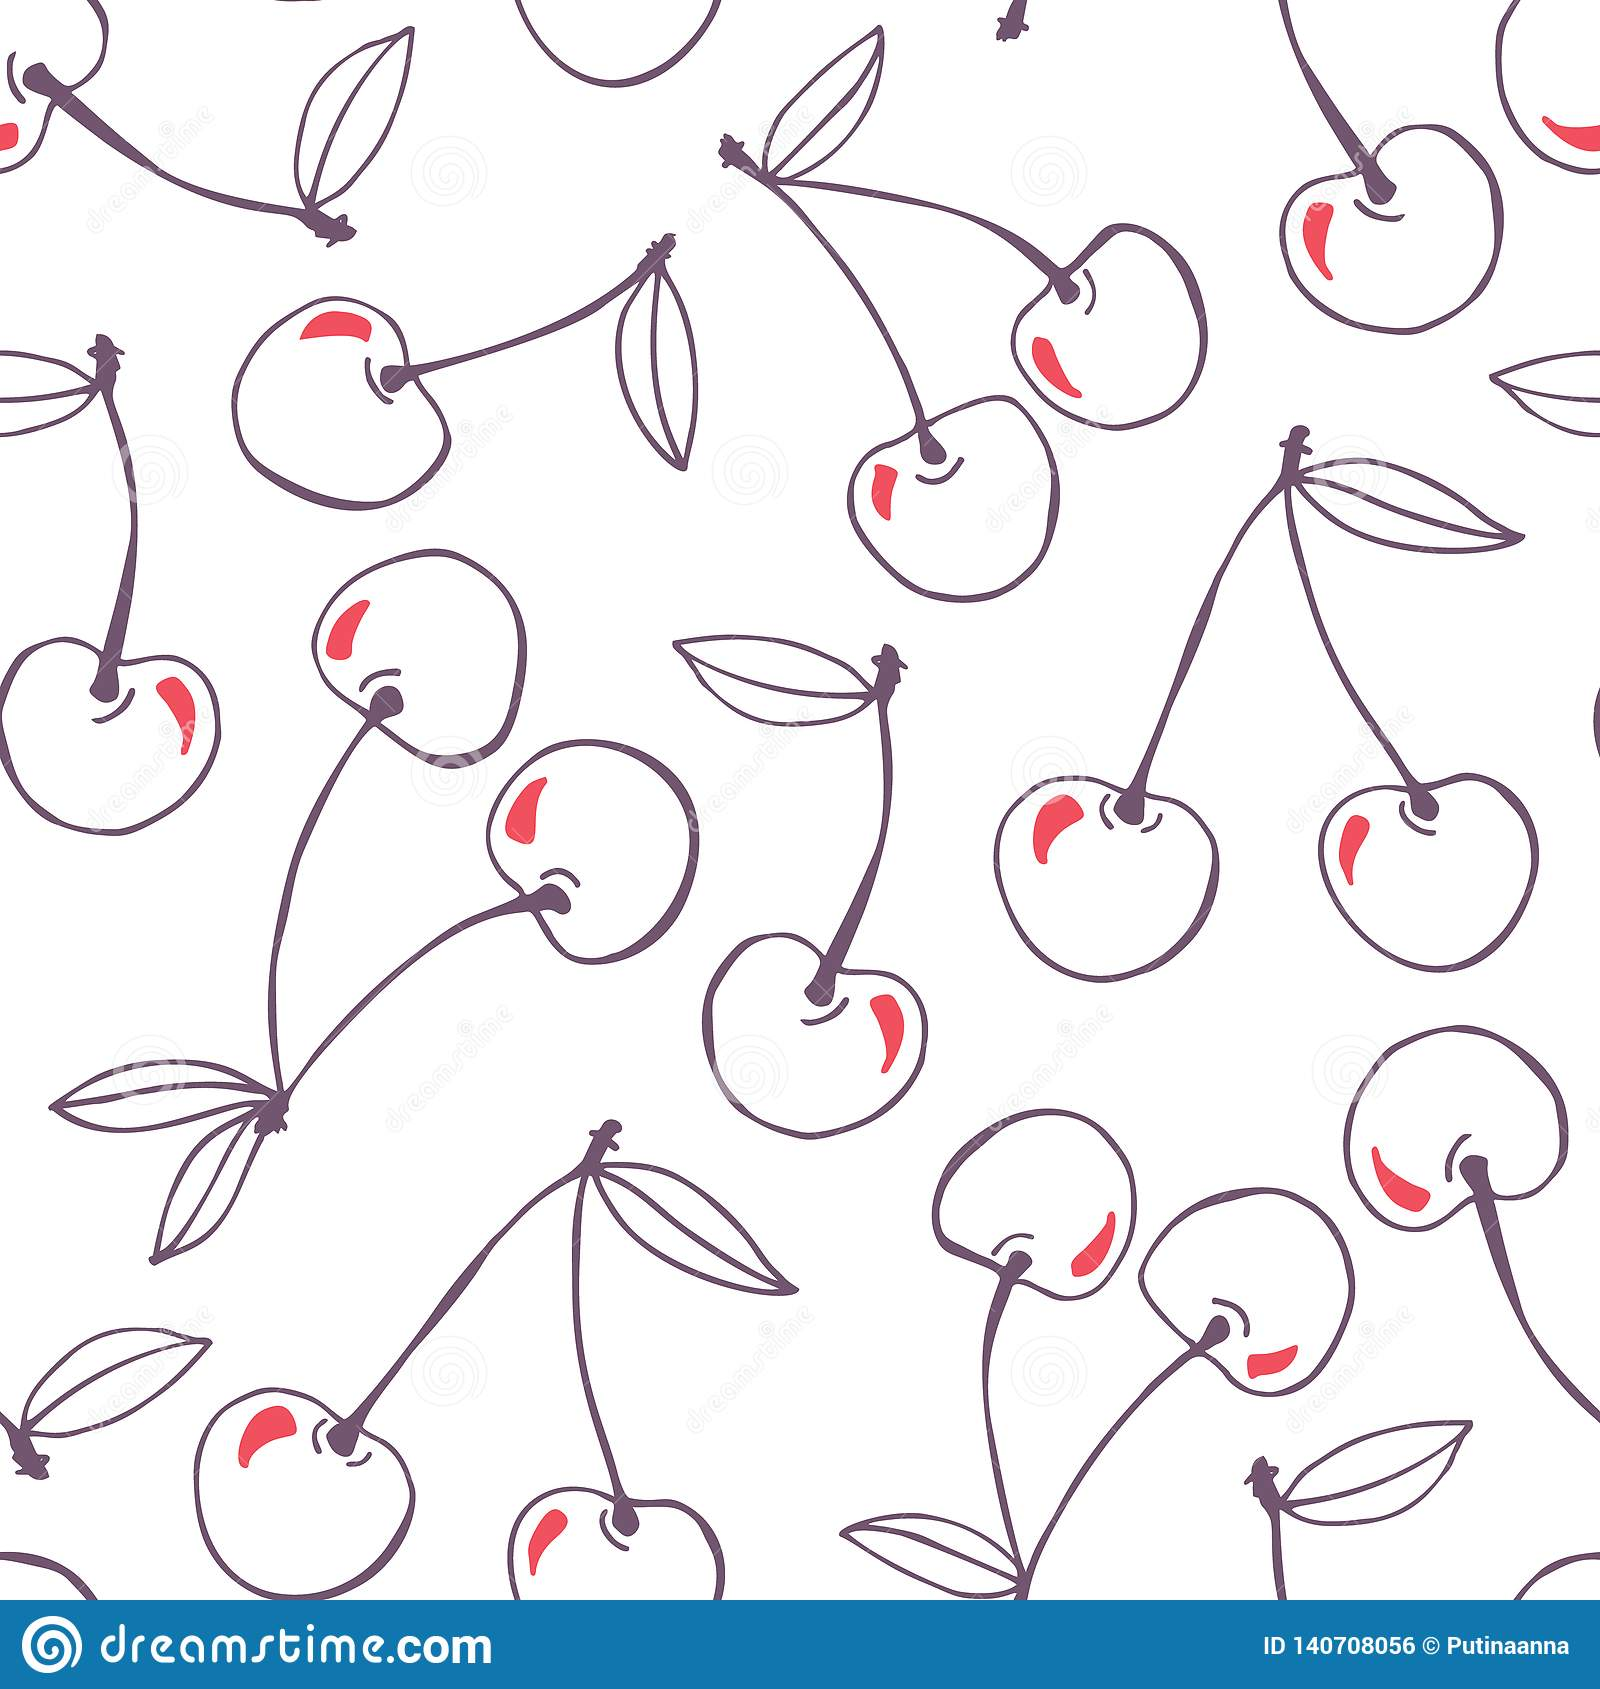 Whimsical hand-drawn doodle cherries vector seamless pattern background. Line Art Summer Fruits